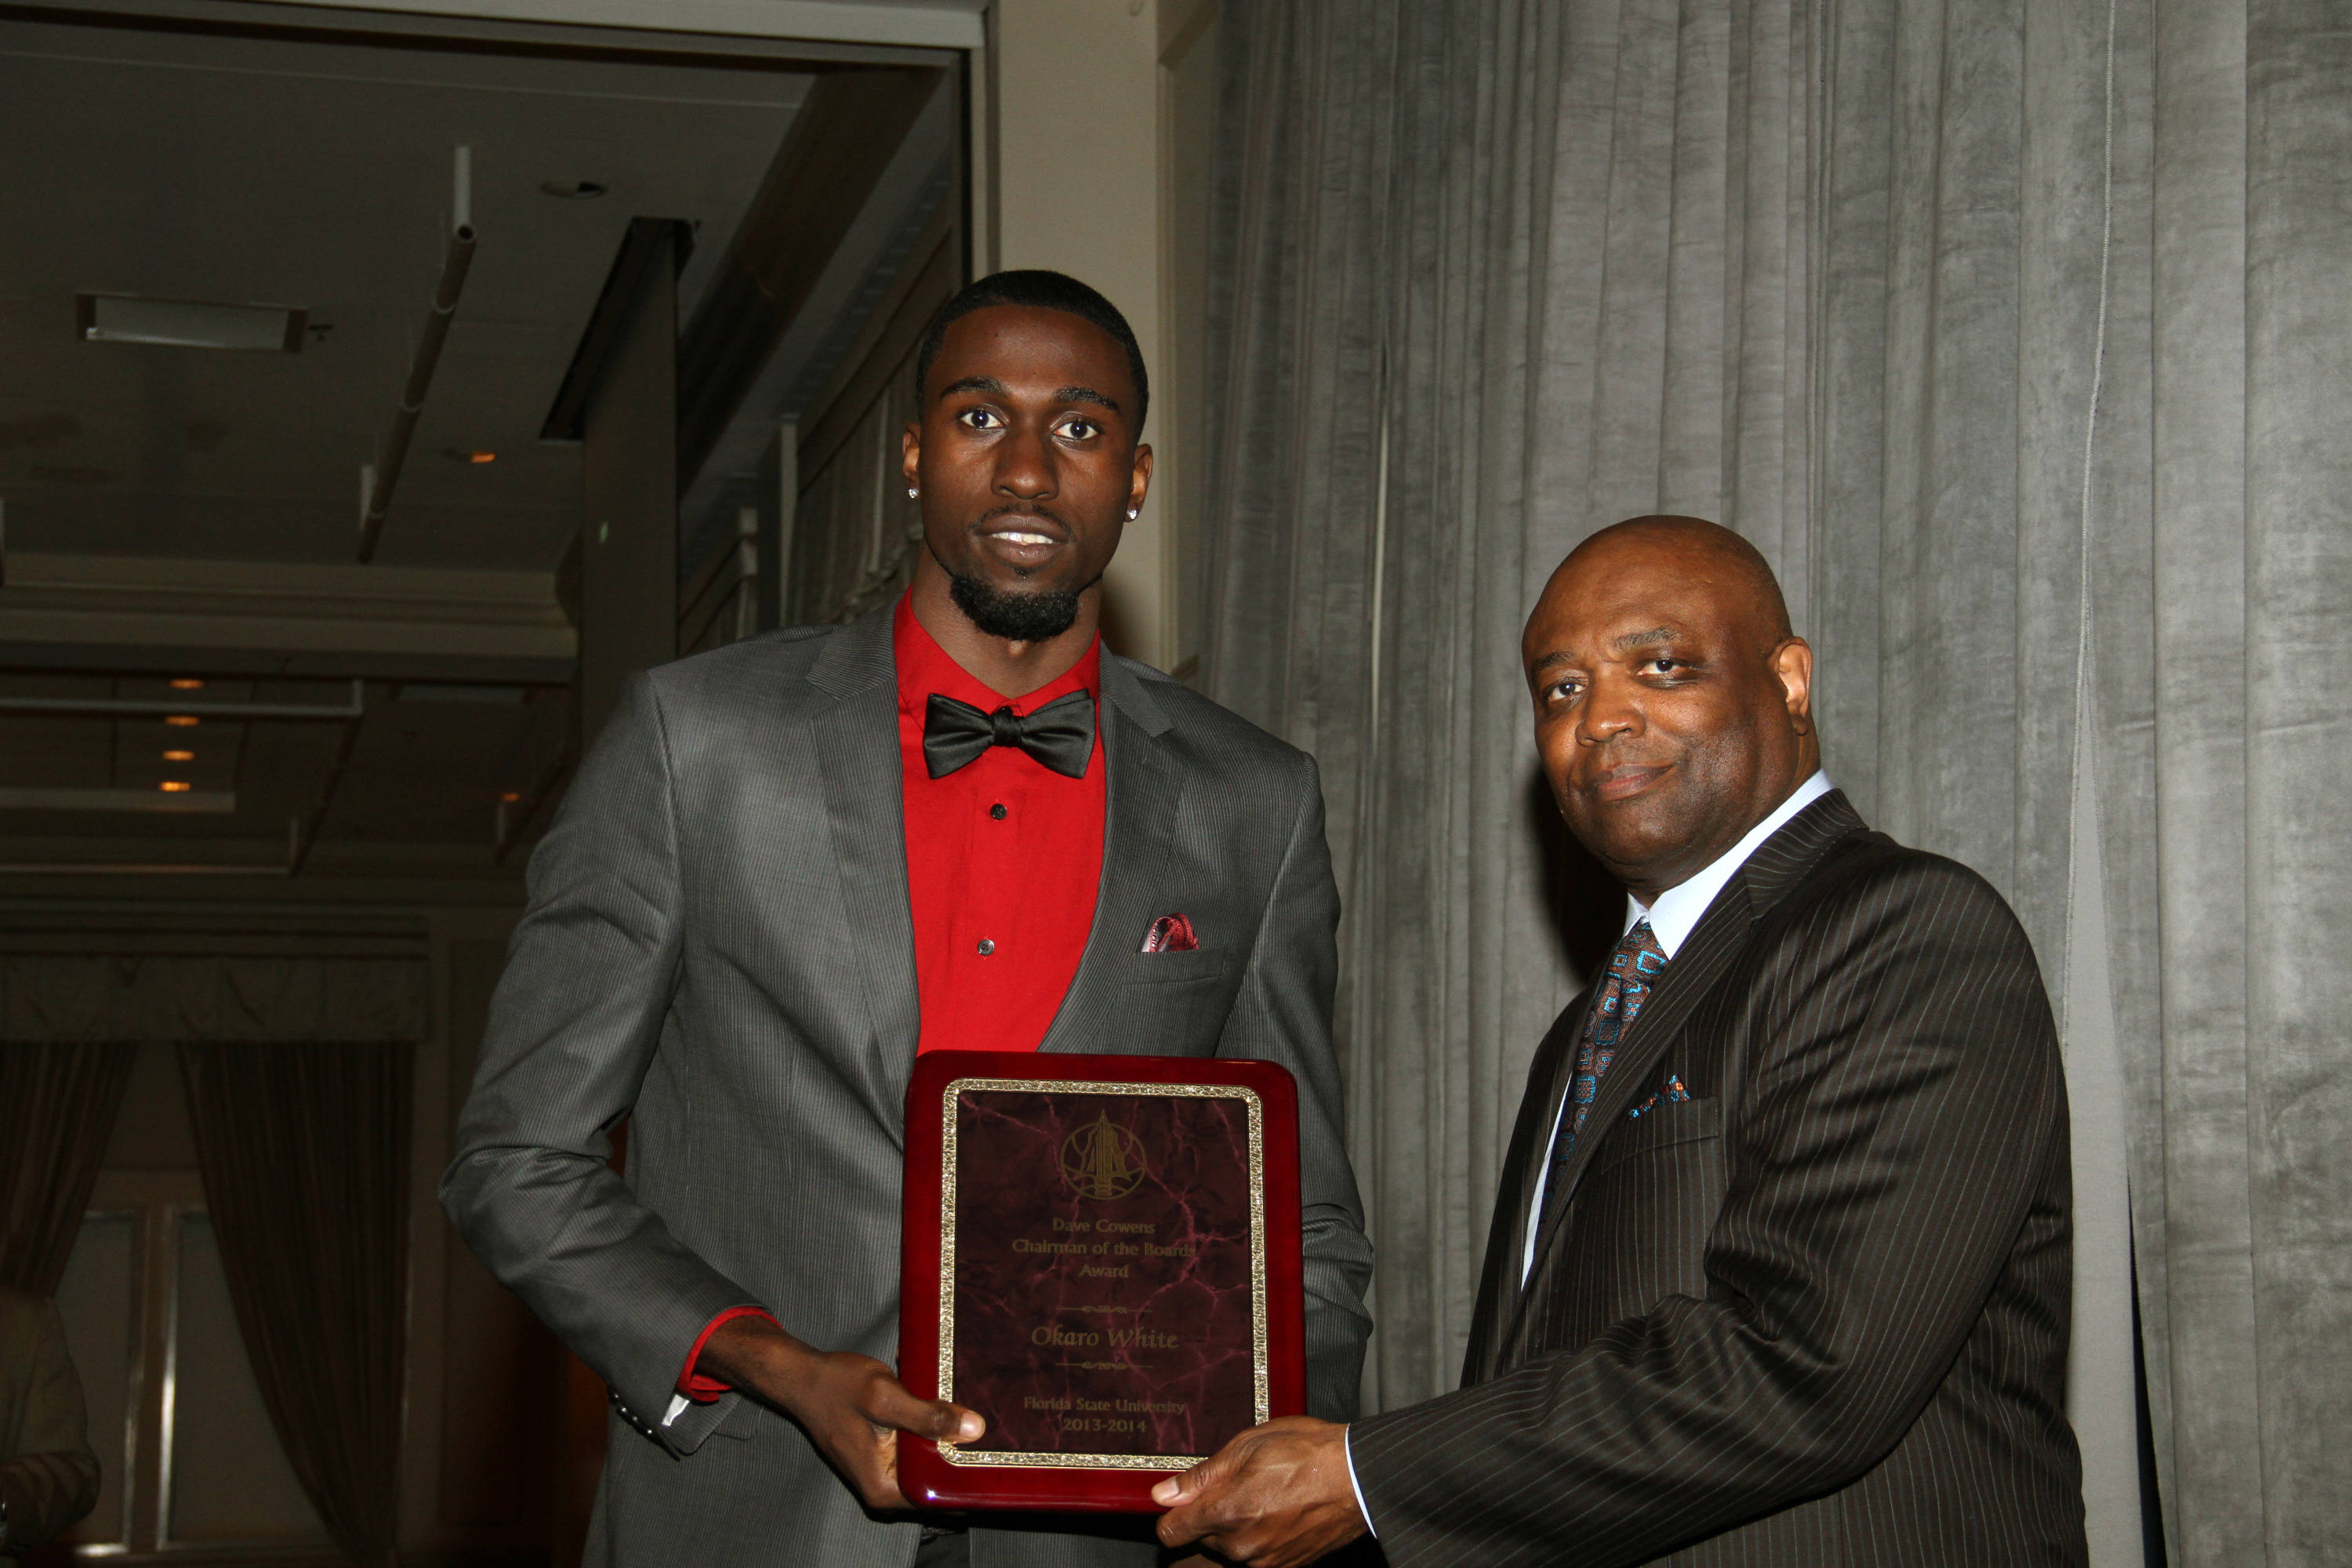 Men's Basketball Banquet held at the University Center Club.